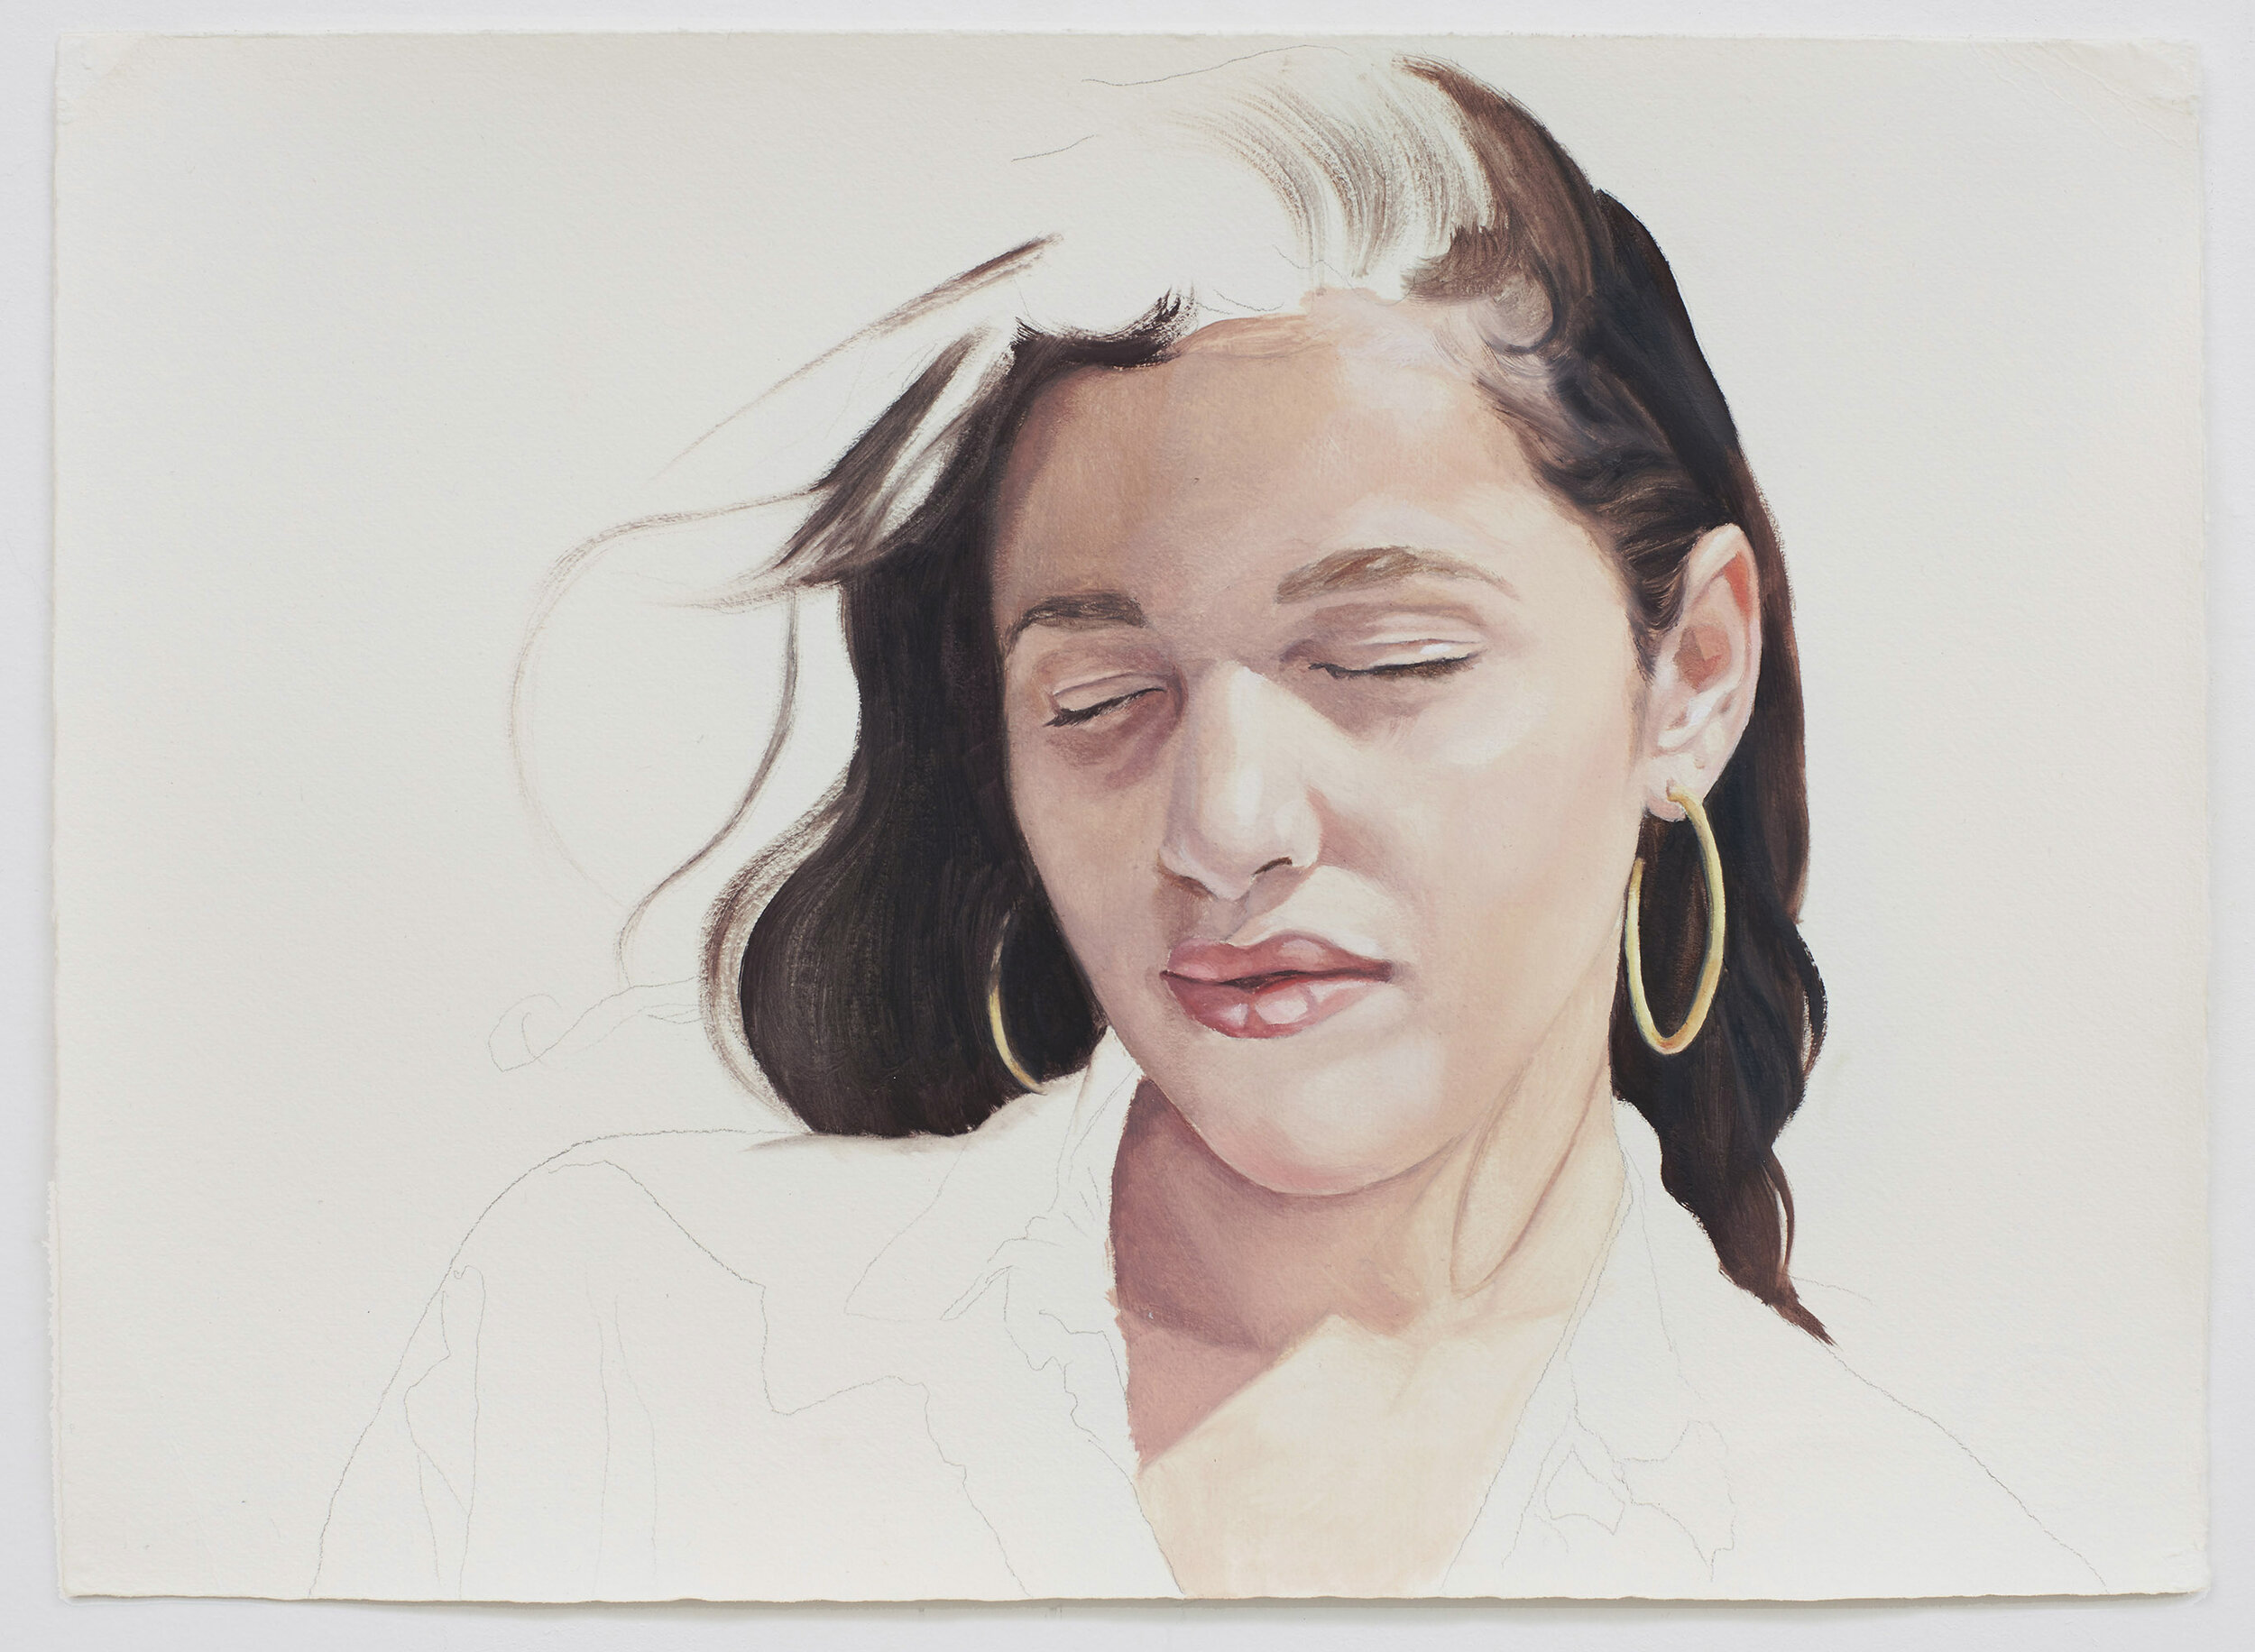 Sarah Kurz, I Take You Along, 2019, oil on paper, 11 x 15 1/4 inches